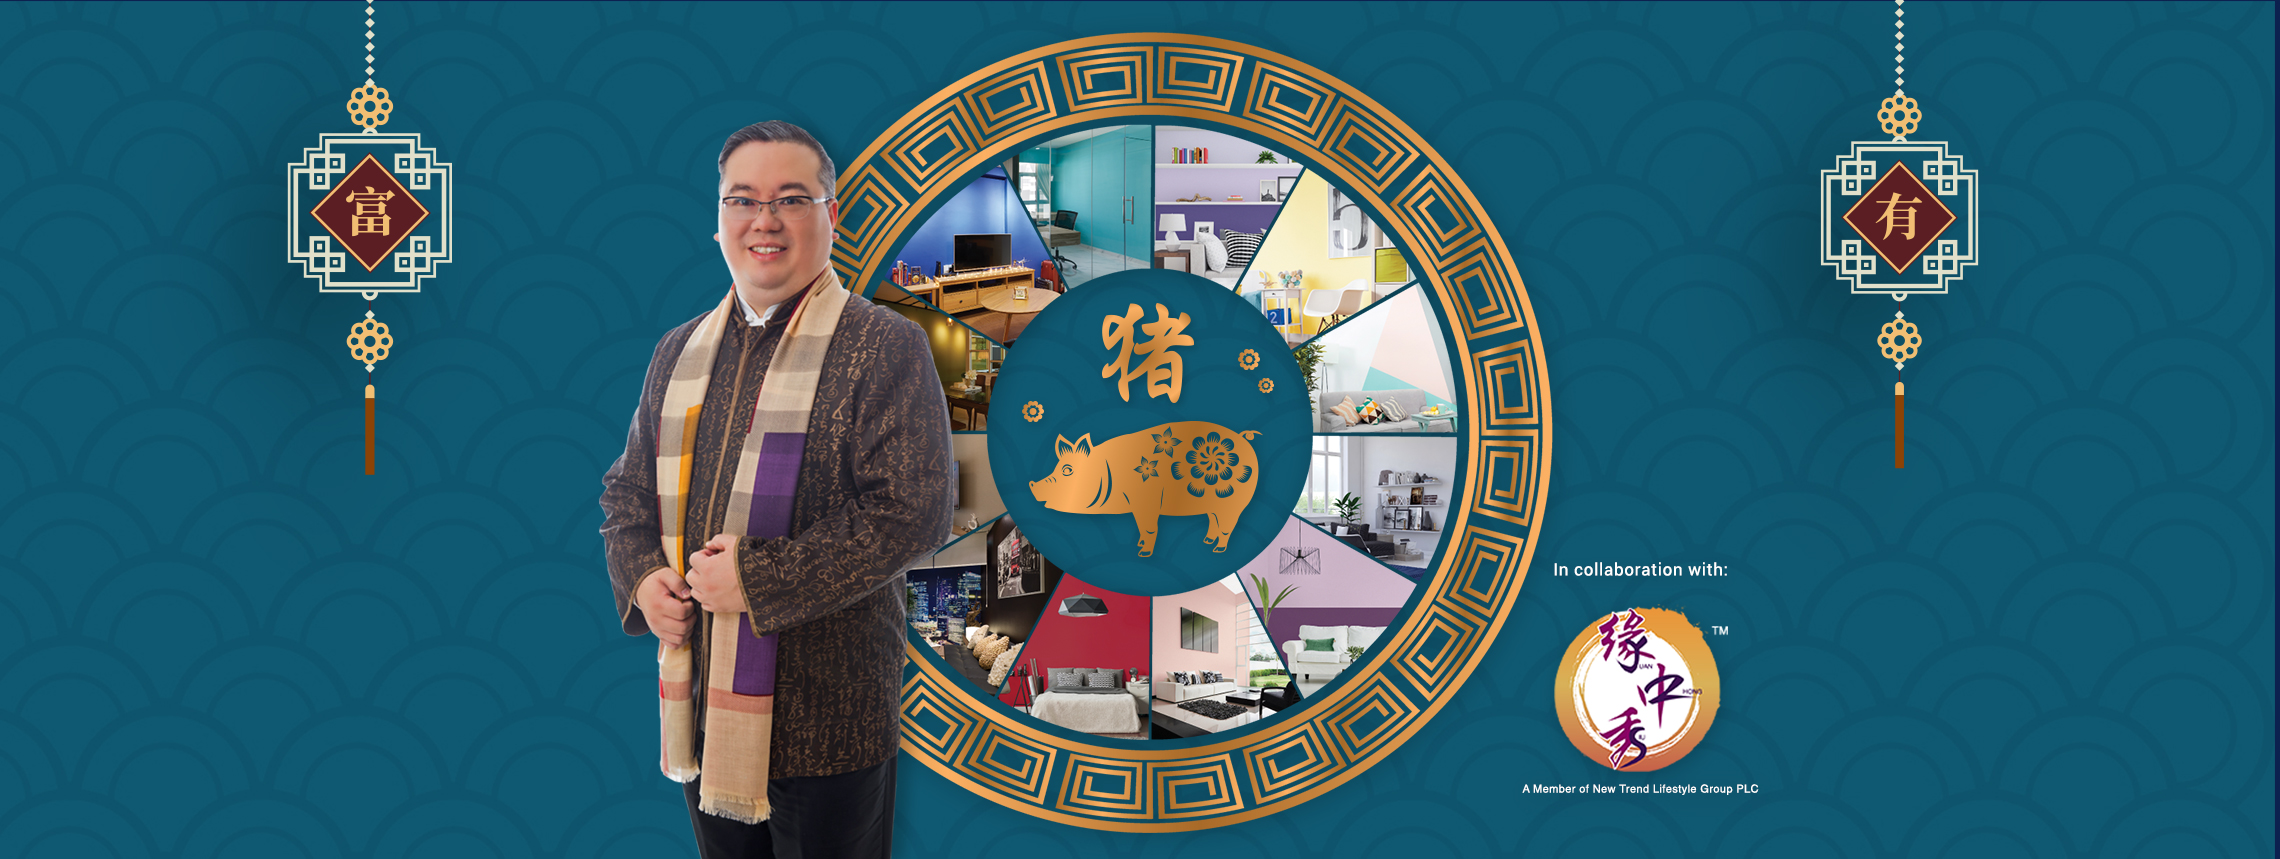 Nippon Paint Colours of Fortune 2019 with Master Phang | 彭钟桦大师